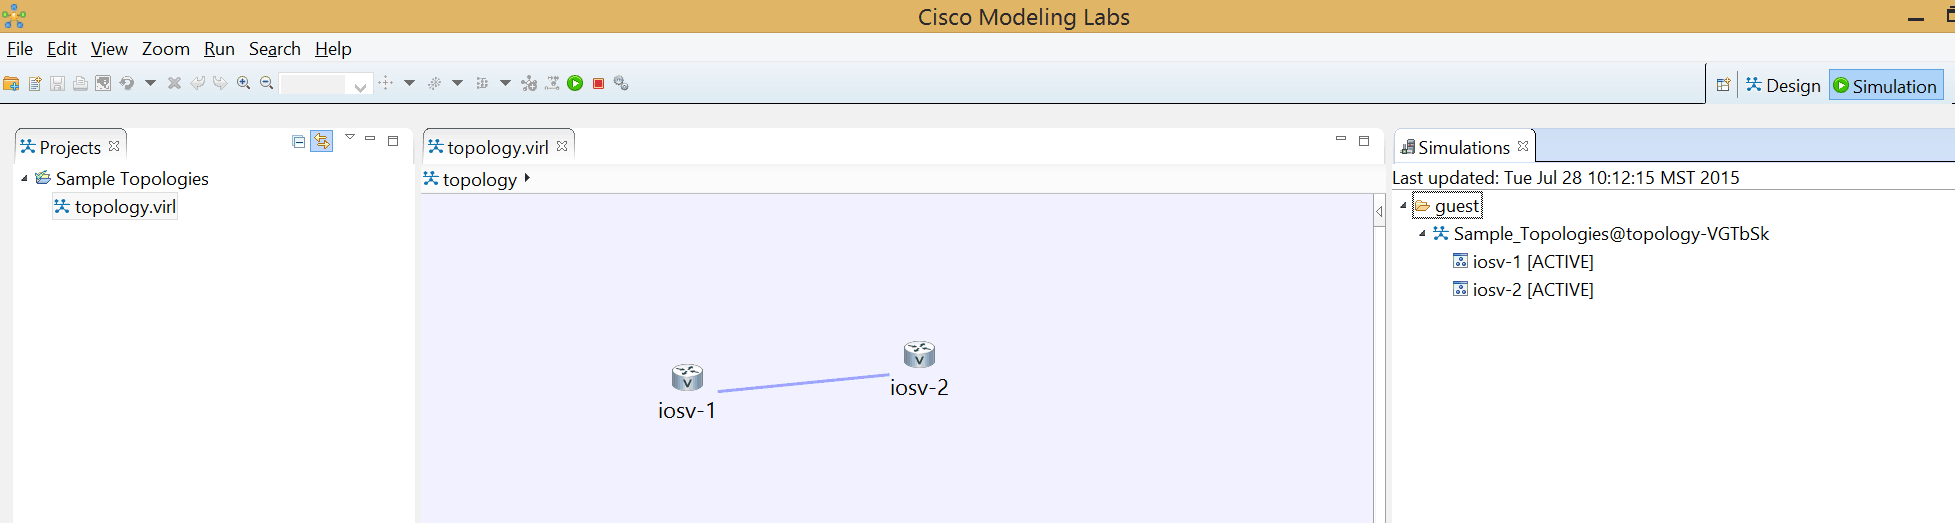 002-launch-Cisco-Modeling-Labs